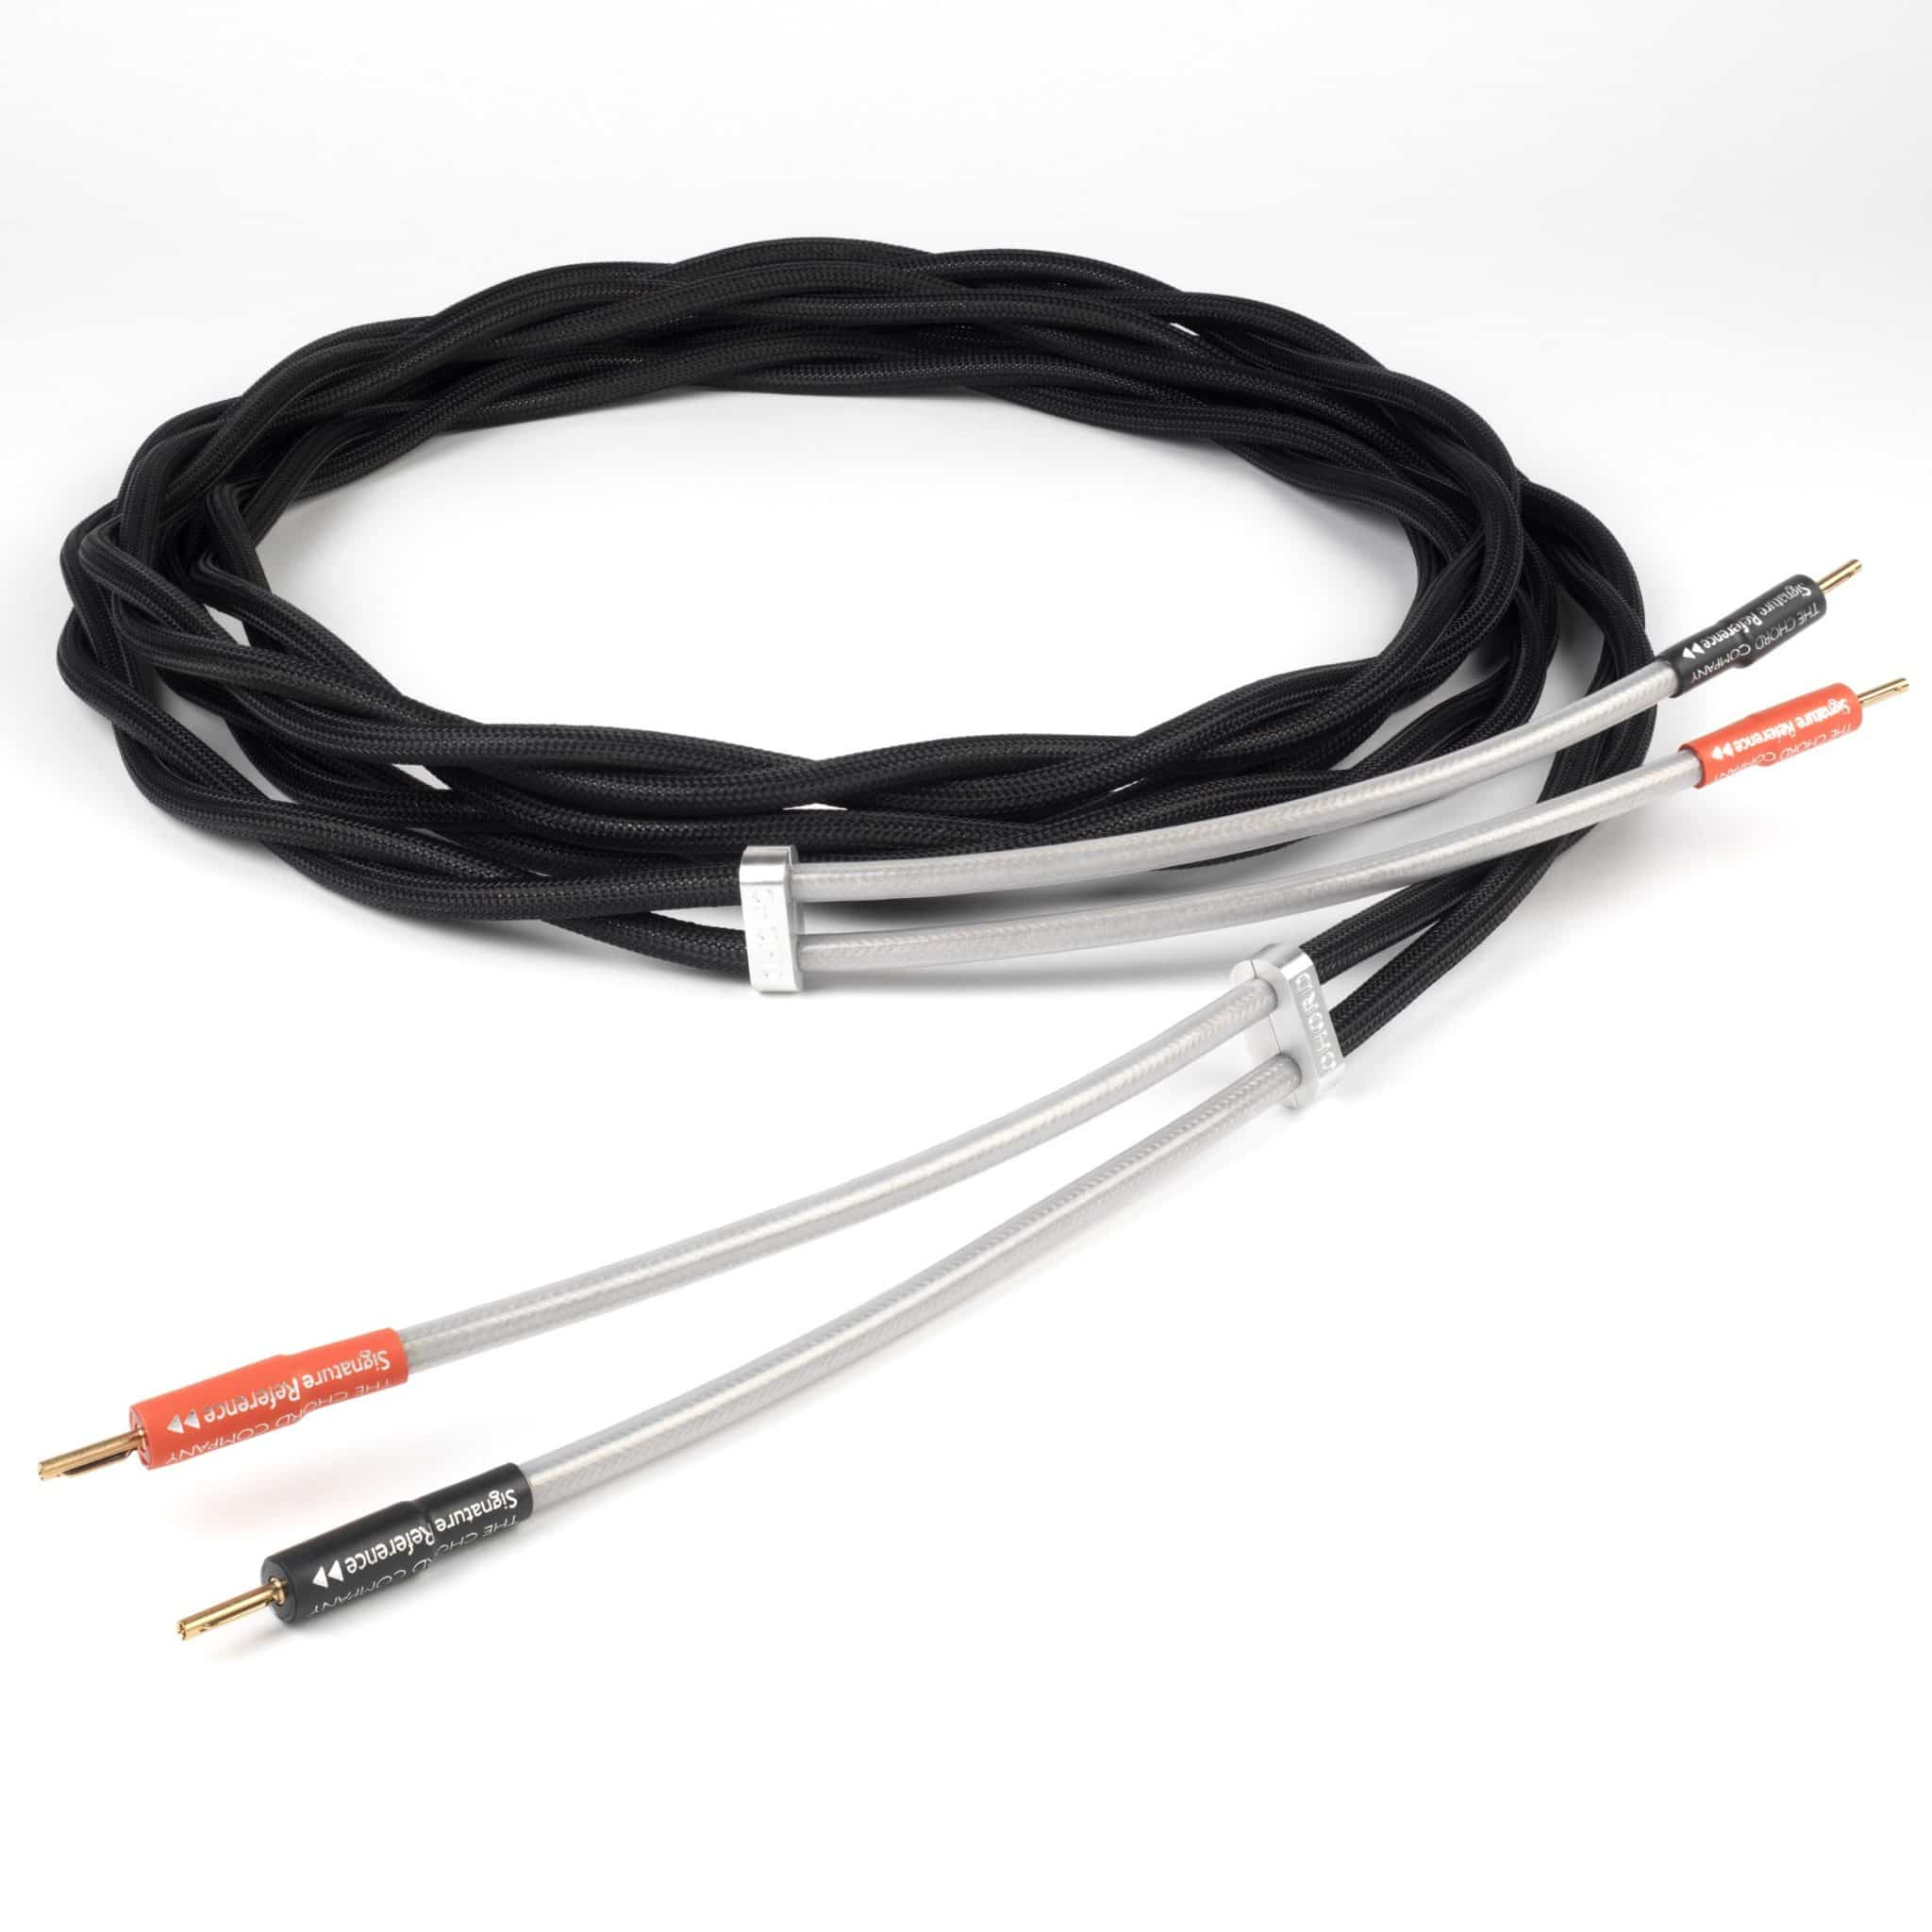 signature reference speaker cables from chord the audiophile man. Black Bedroom Furniture Sets. Home Design Ideas